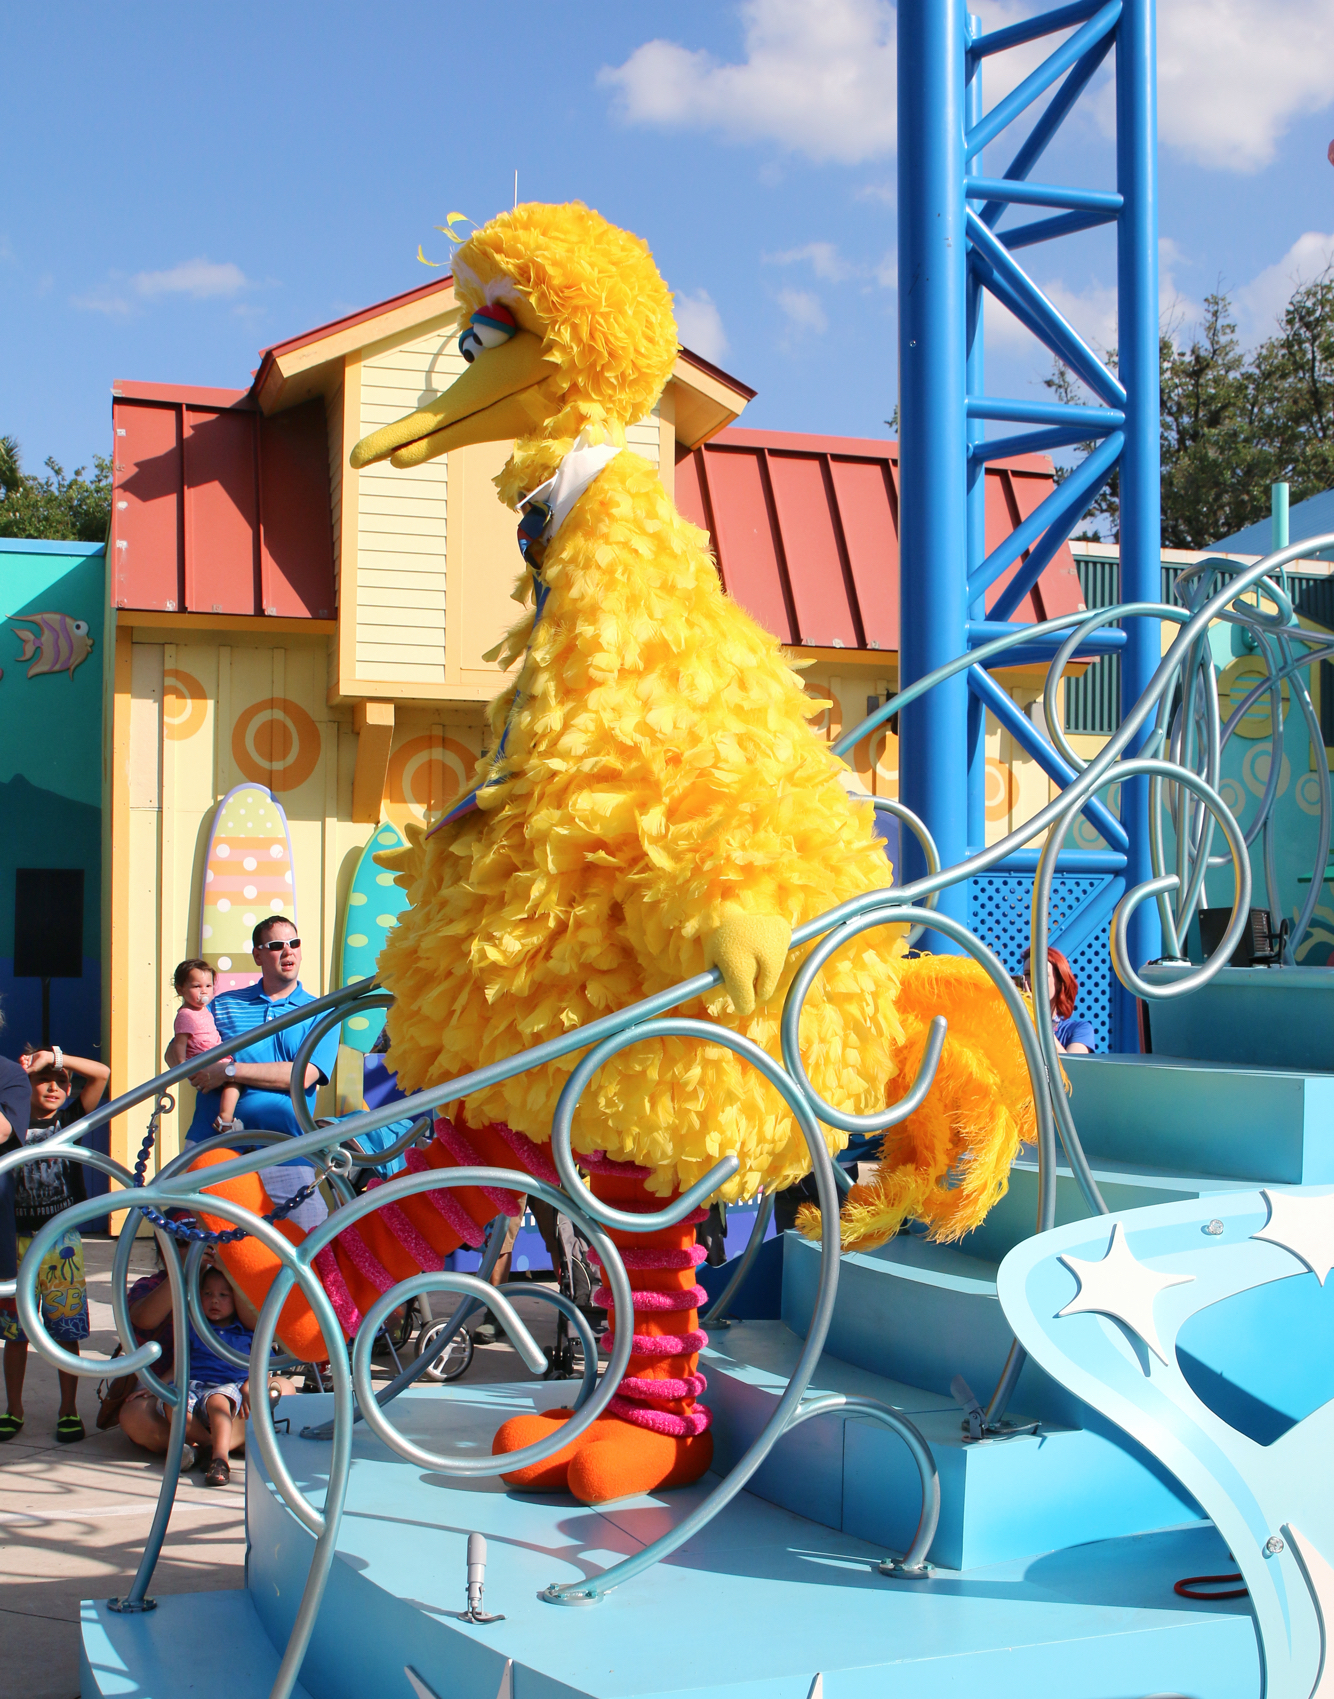 Big Bird dancing at parade